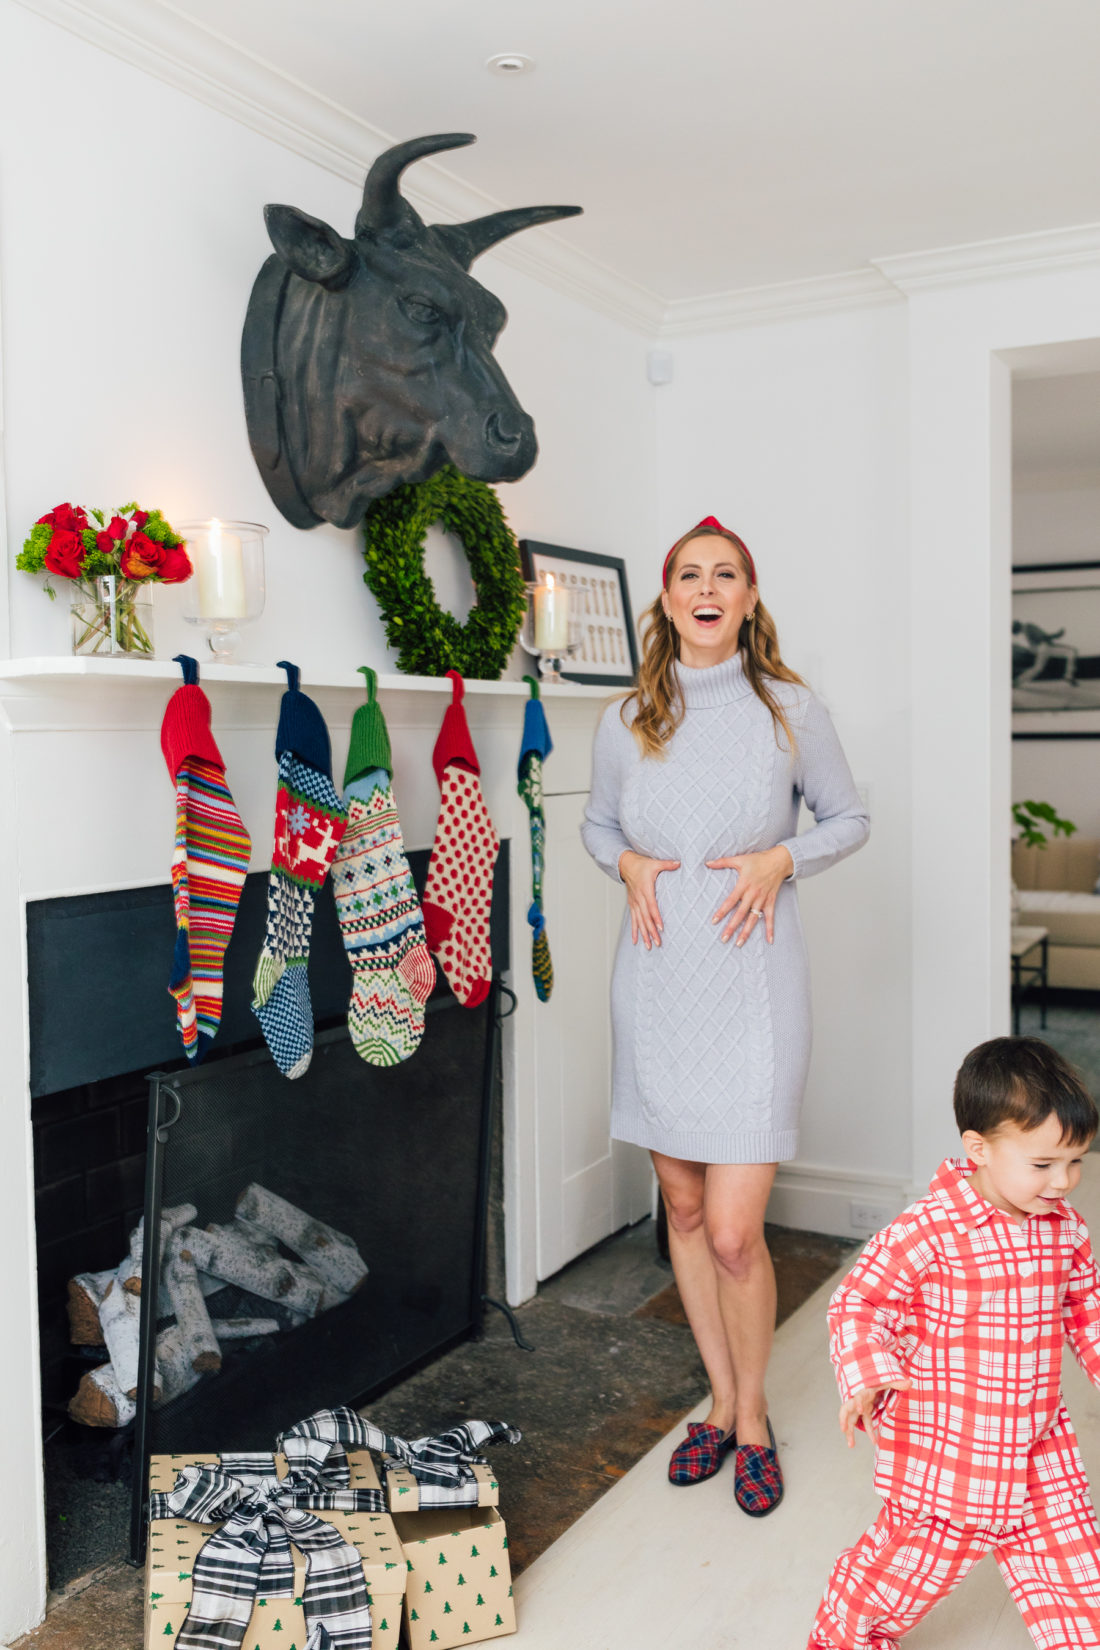 Eva Amurri Martino shares her favorite gifts from Garnet Hill, including these knit Christmas Stockings